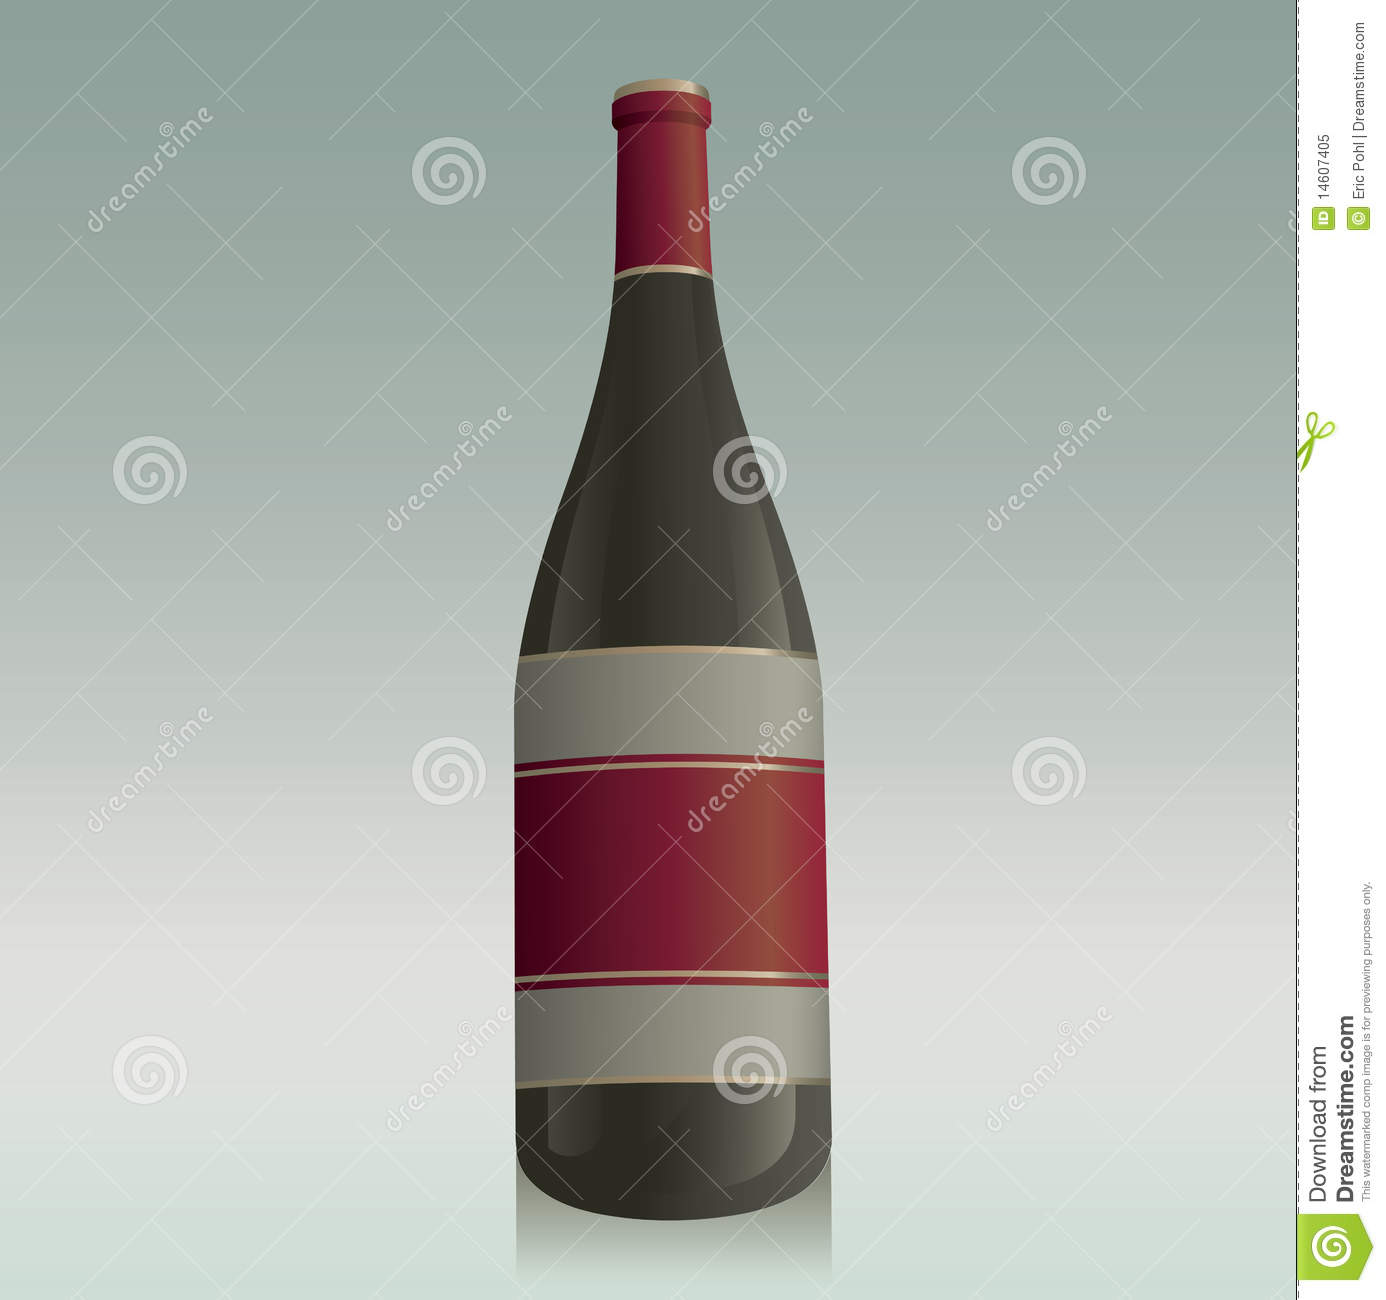 generic wine bottle royalty free stock photo image 14607405 With generic wine labels